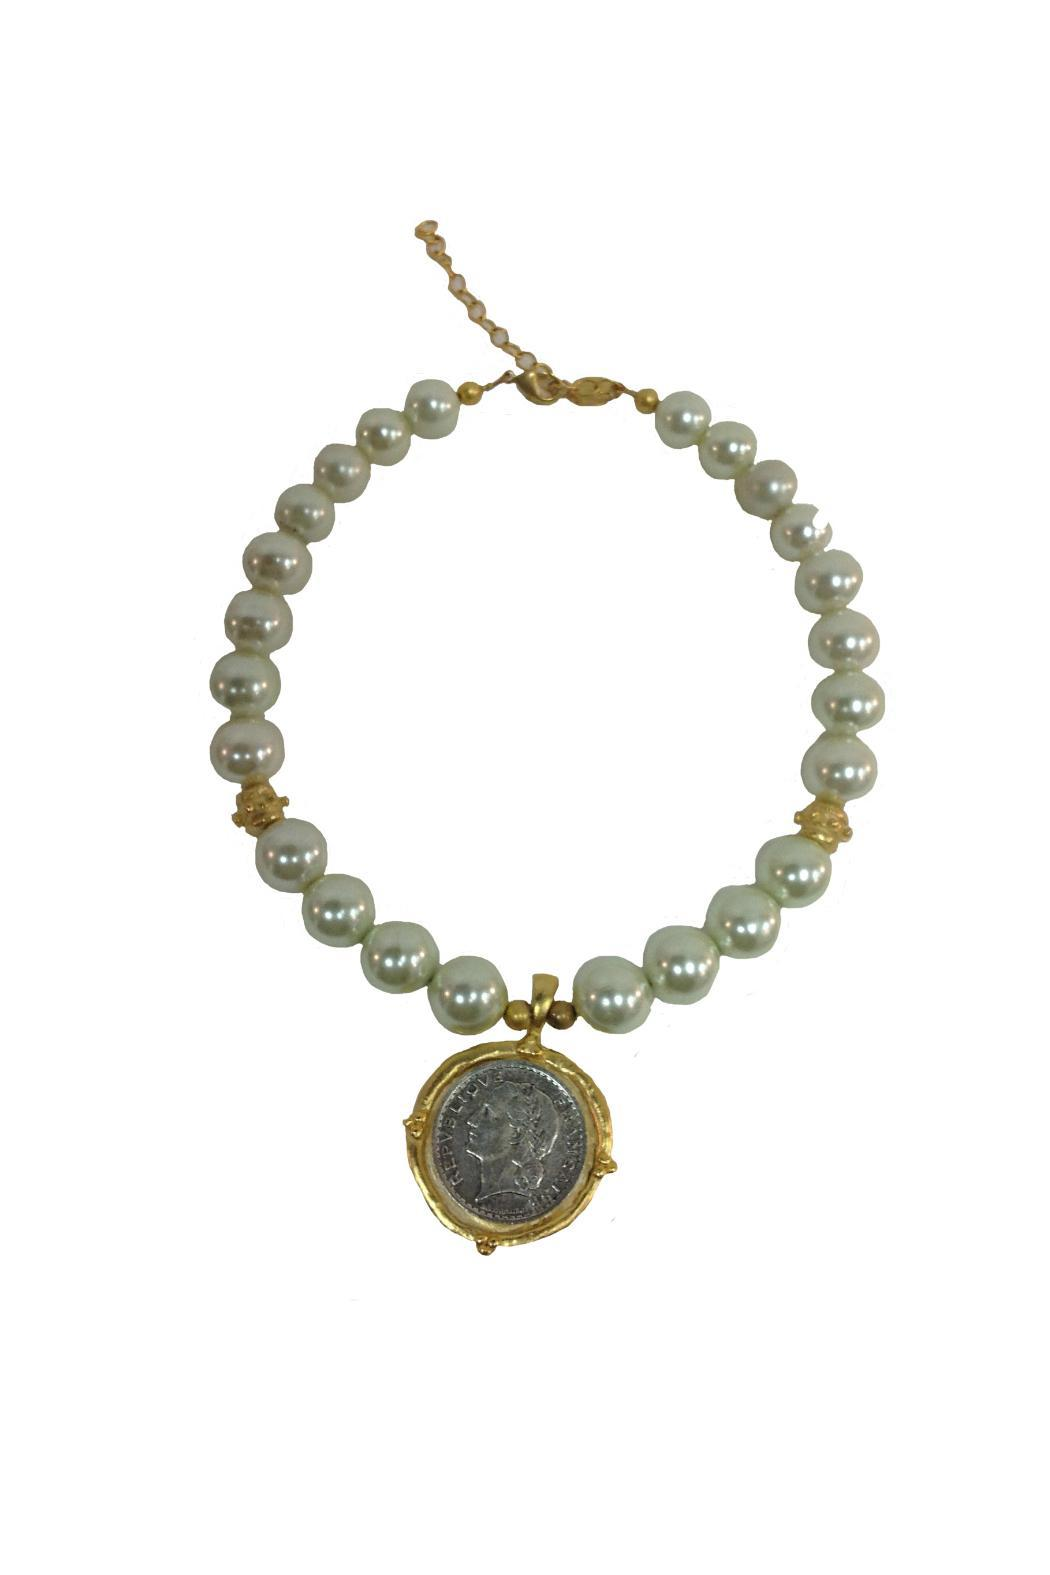 shaws jewelry susan shaw coin pearl necklace from louisiana by 963